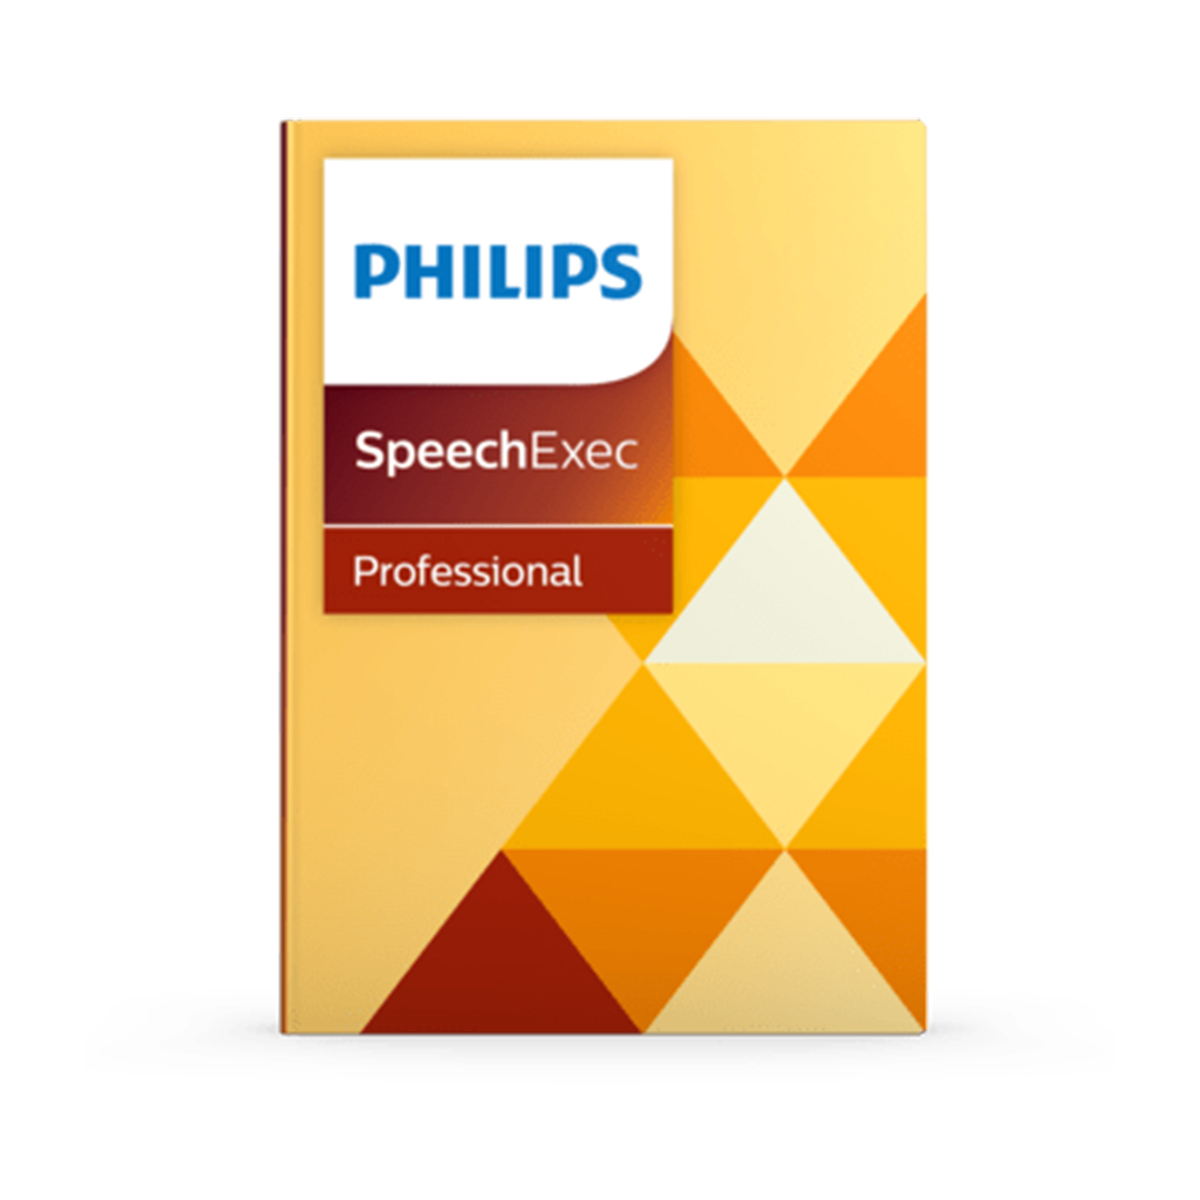 Philips LFH4500 SpeechExec Pro Transcription Software v10